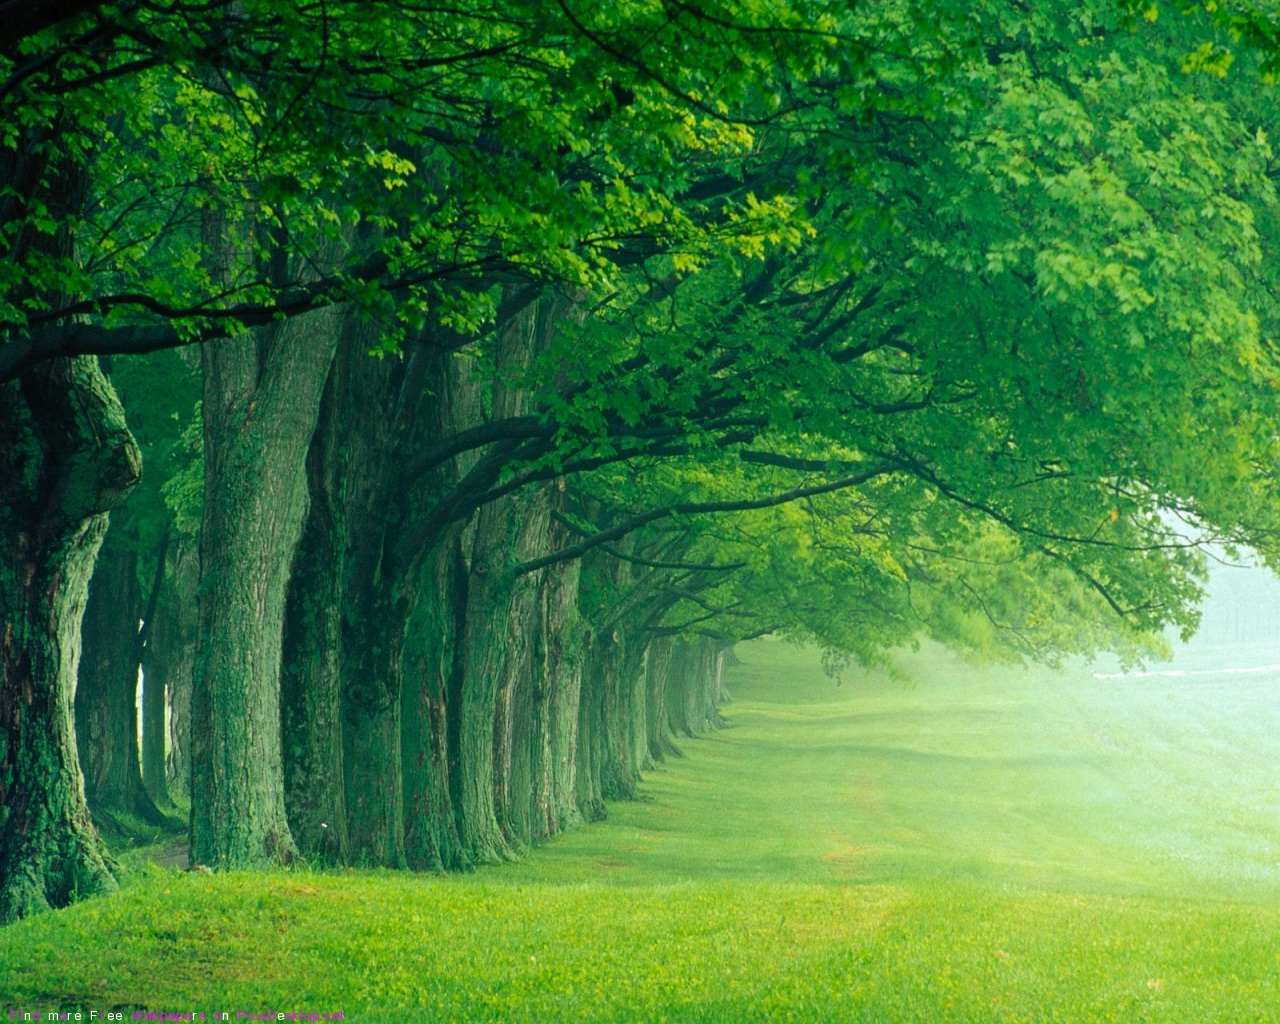 lush green forest wallpaper - photo #24